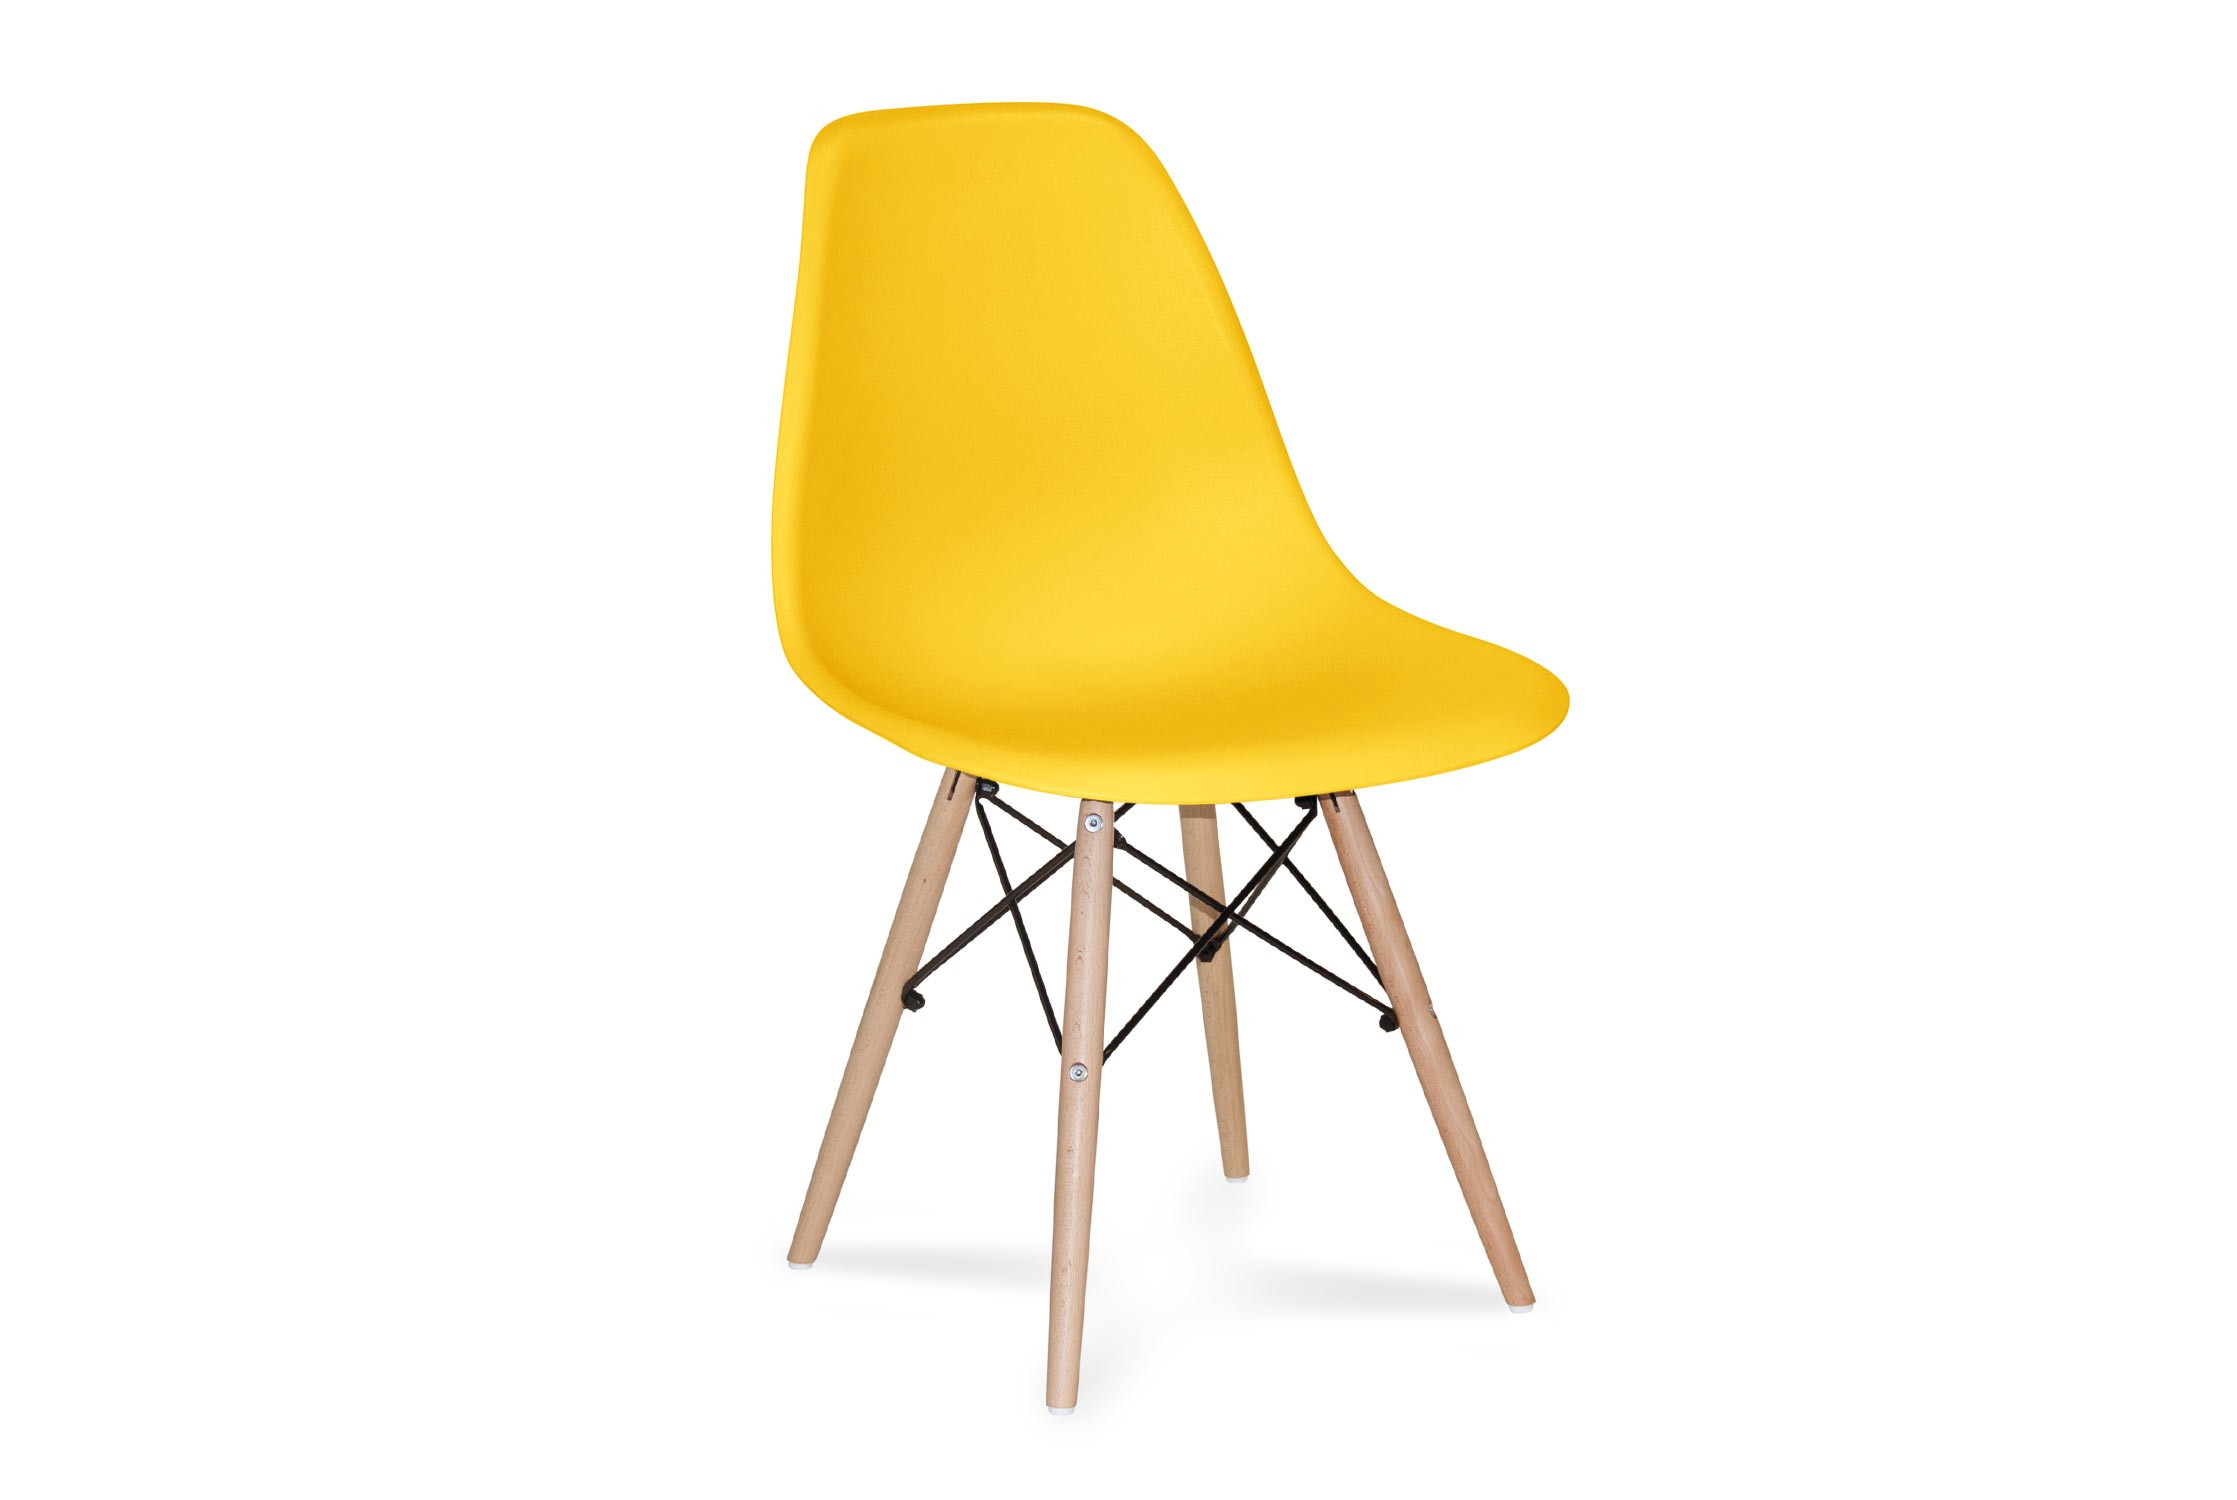 CHAISE TOWER WOOD JAUNE EXTRA QUALITY